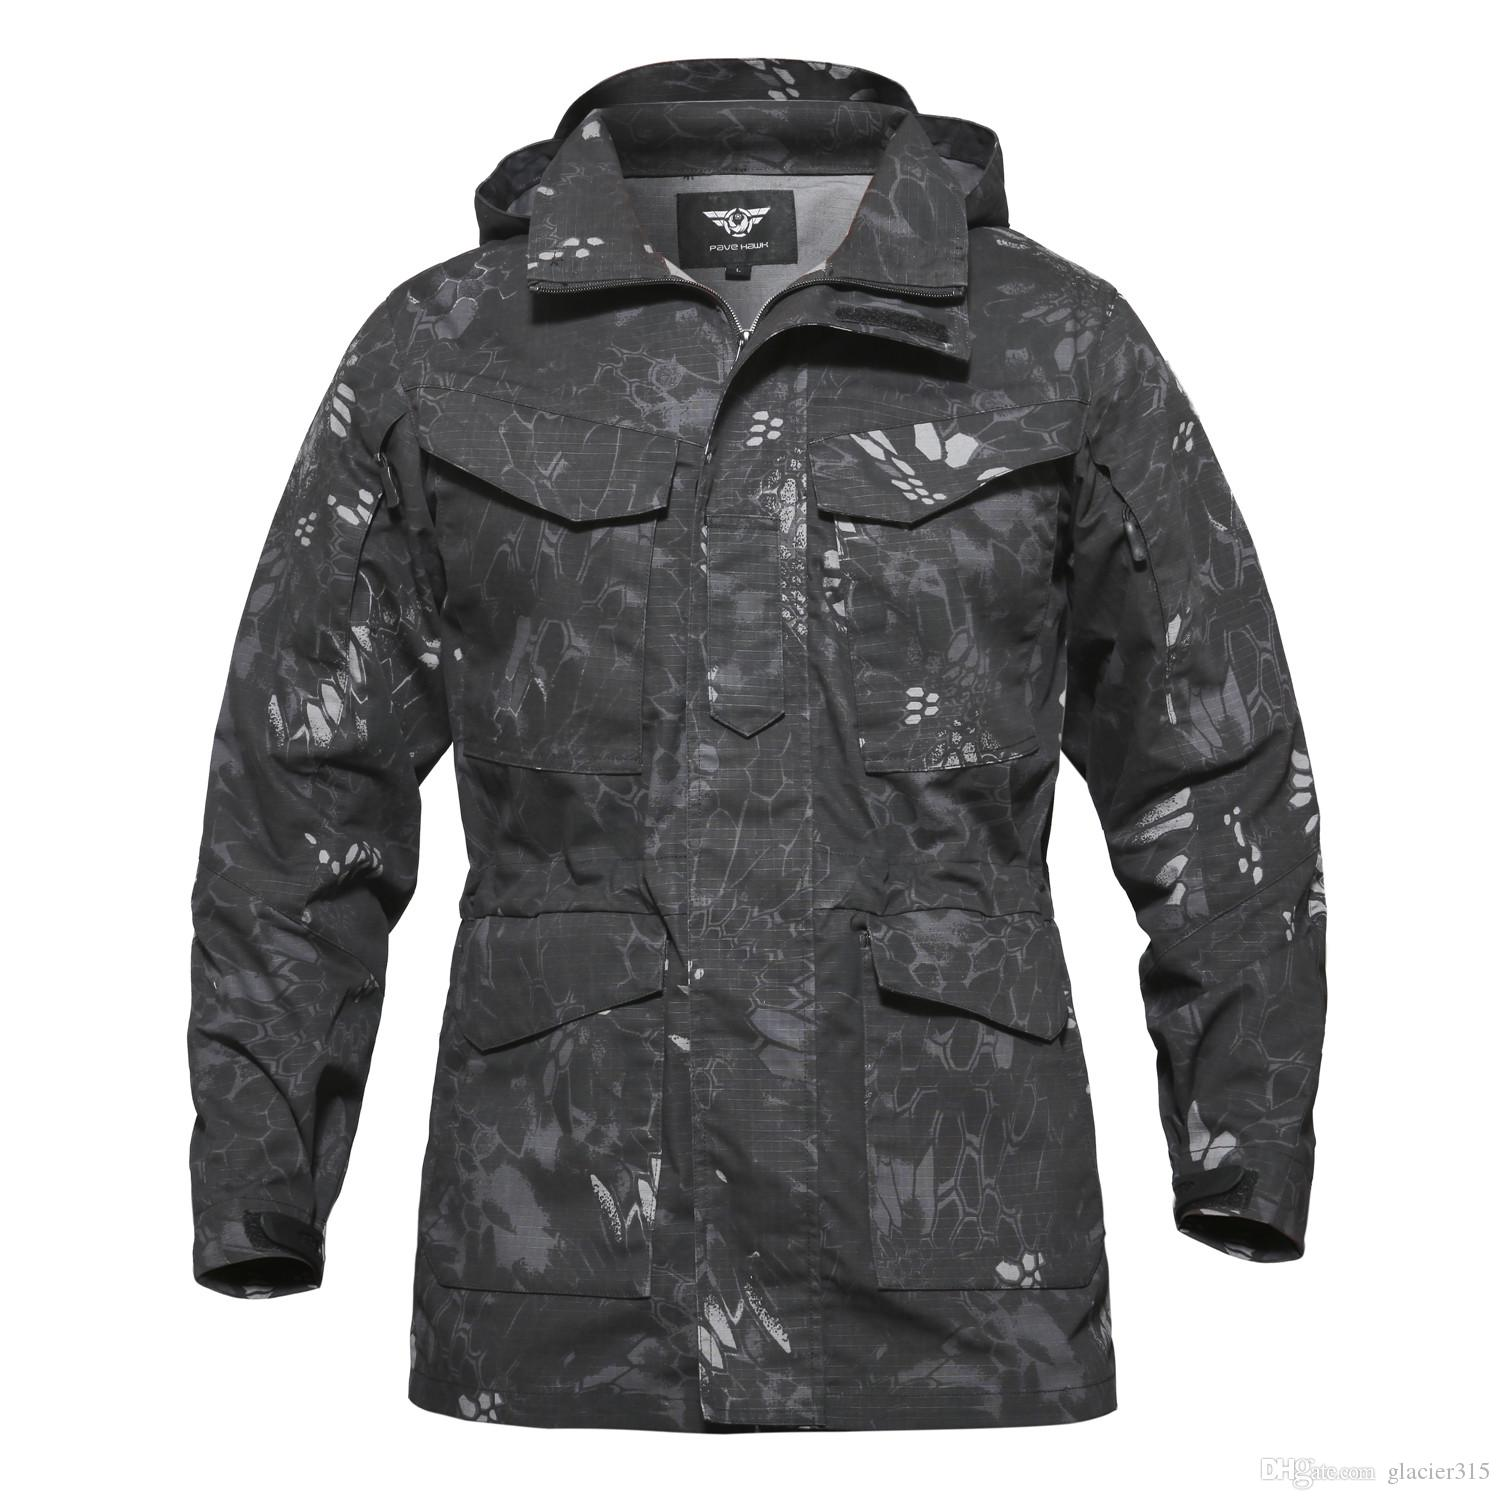 Shanghai Story Men's Military Trench Coat Waterproof windbreaker Trench Army tactical Clothing